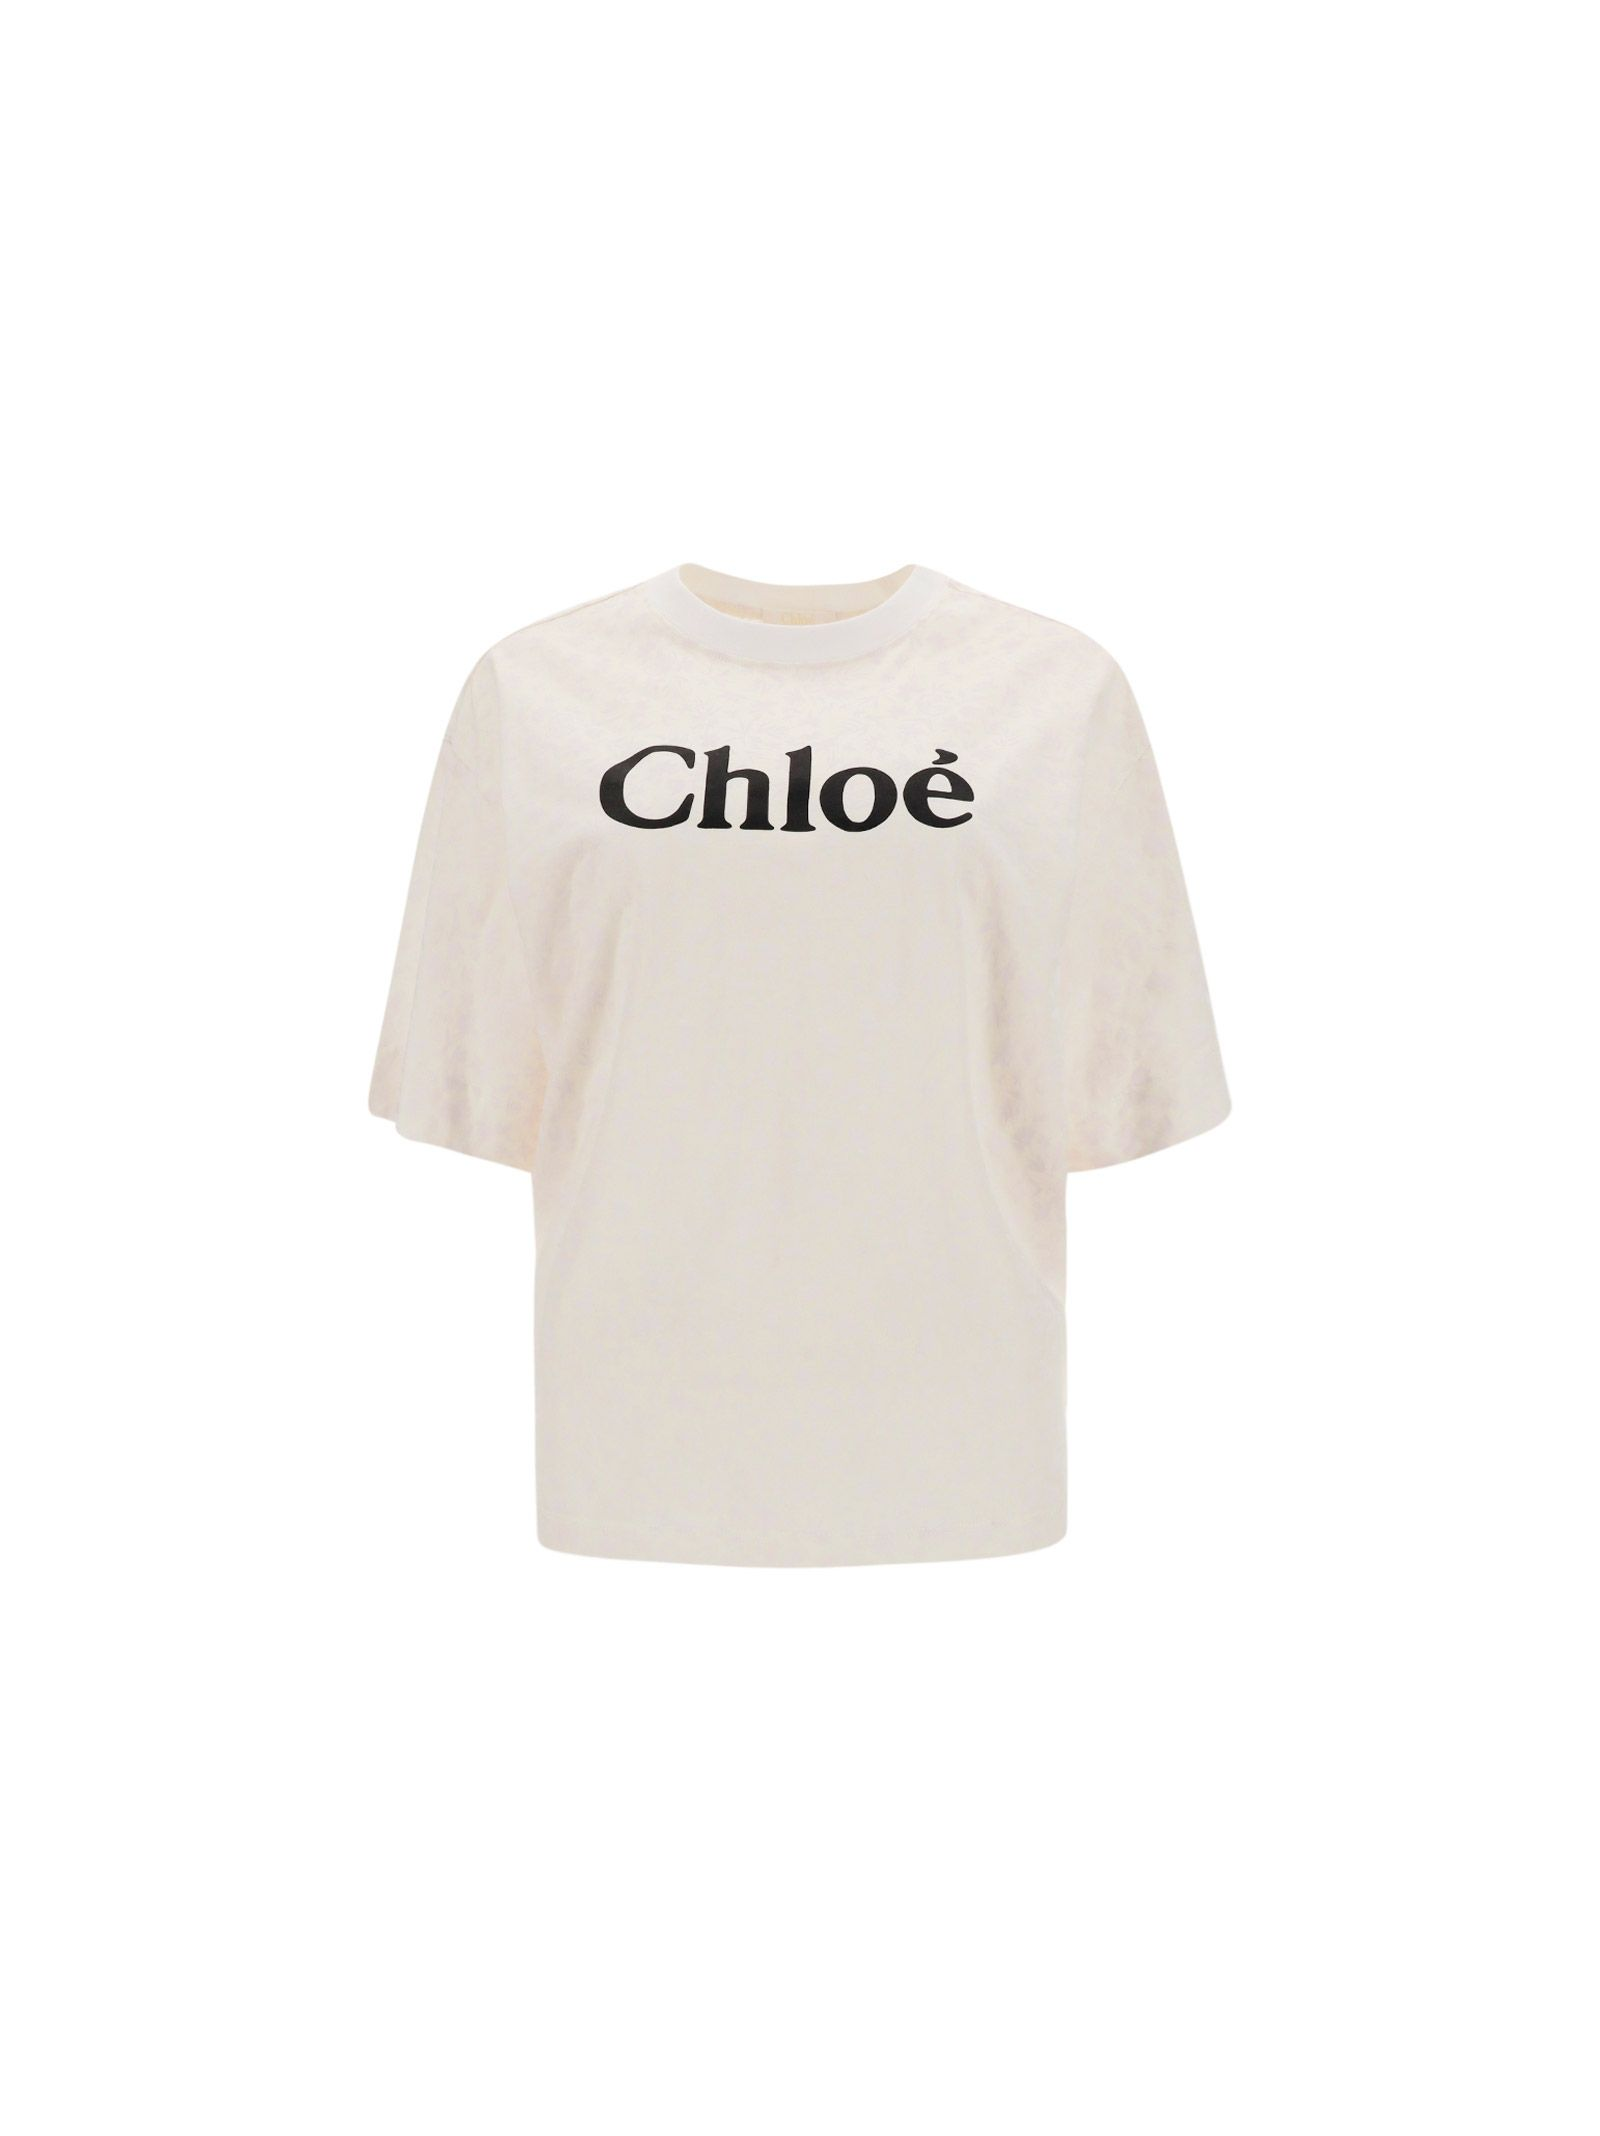 Chloé CHLOÉ WOMEN'S WHITE COTTON T-SHIRT